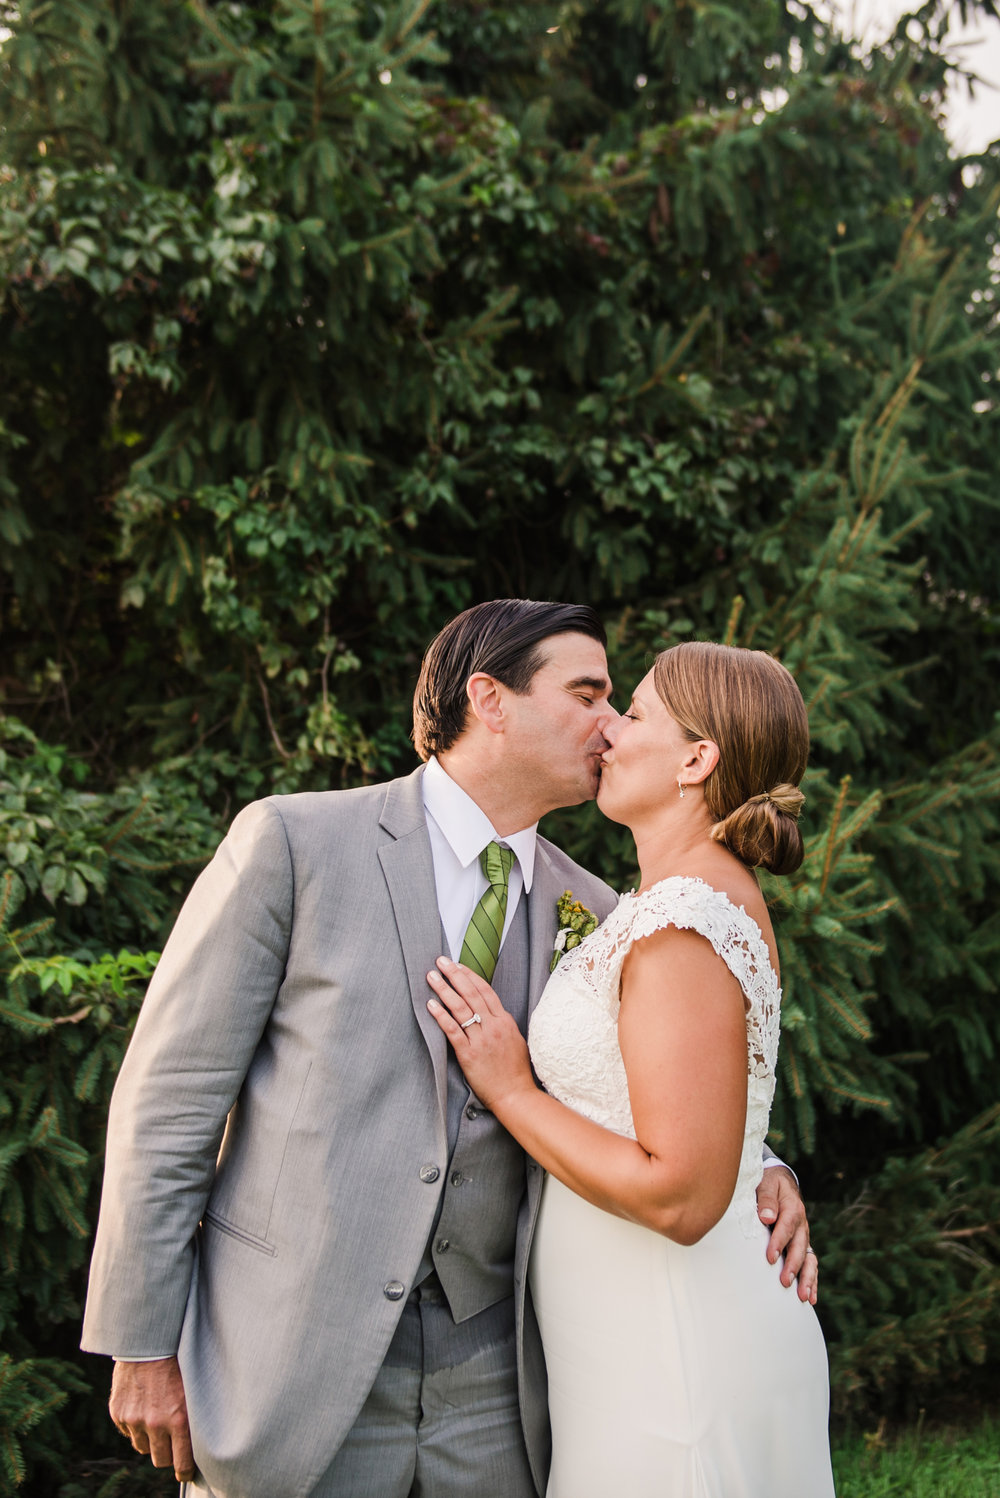 Climbing_Bines_Finger_Lakes_Wedding_JILL_STUDIO_Rochester_NY_Photographer_184917.jpg